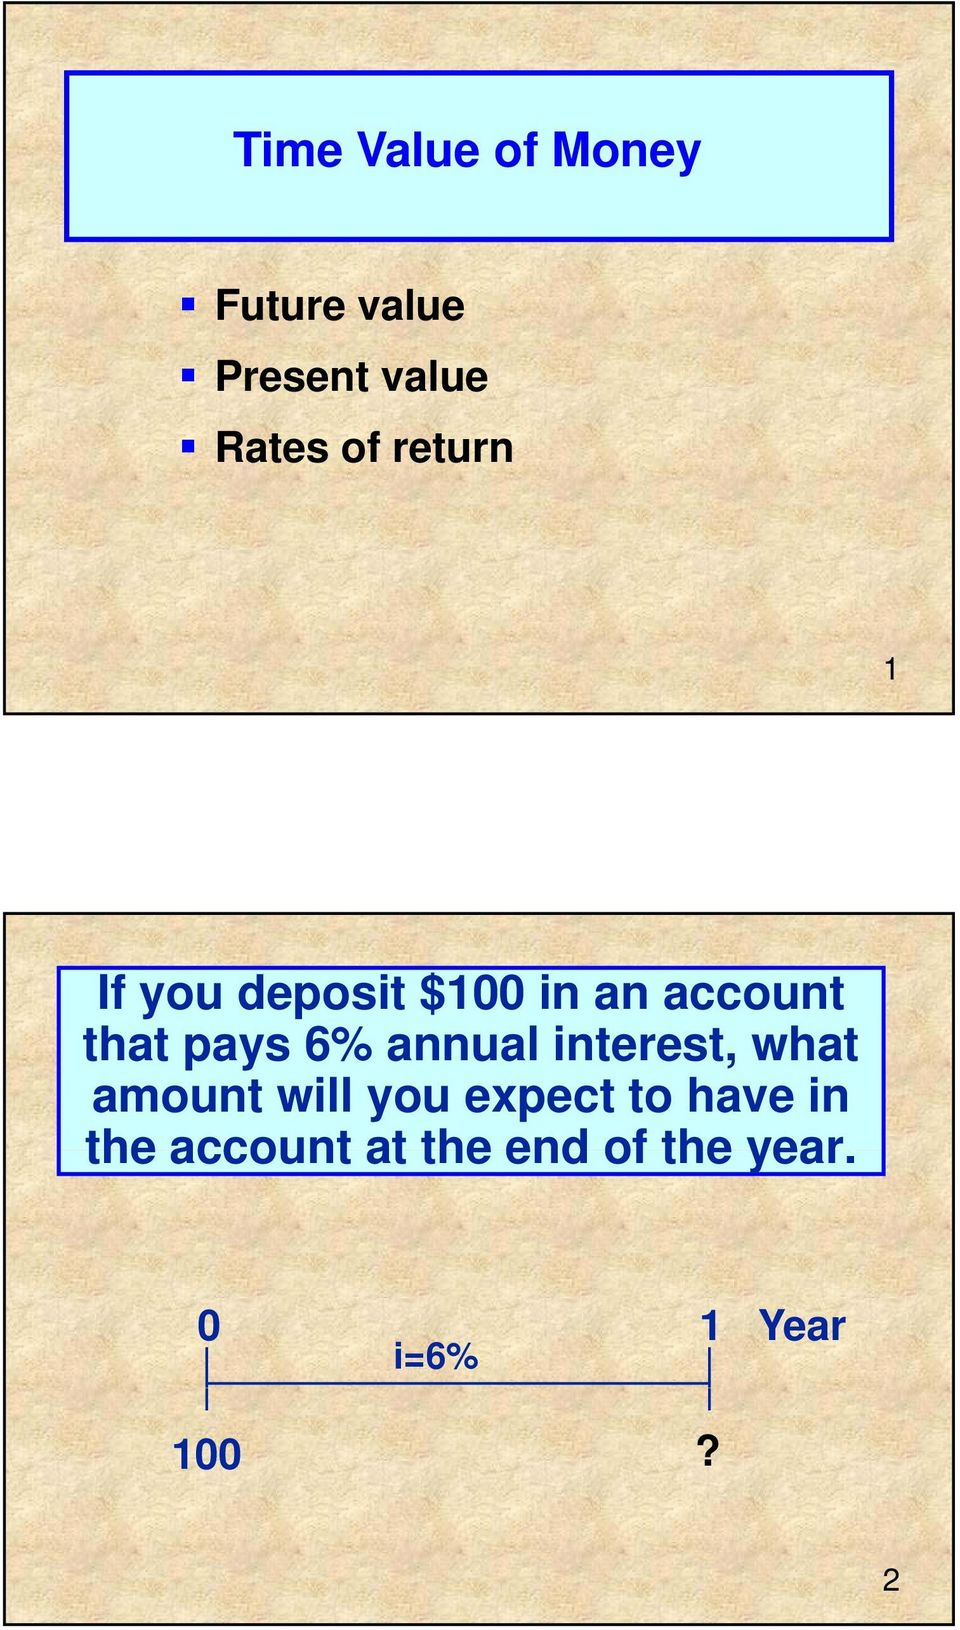 annual interest, what amount will you expect to have in